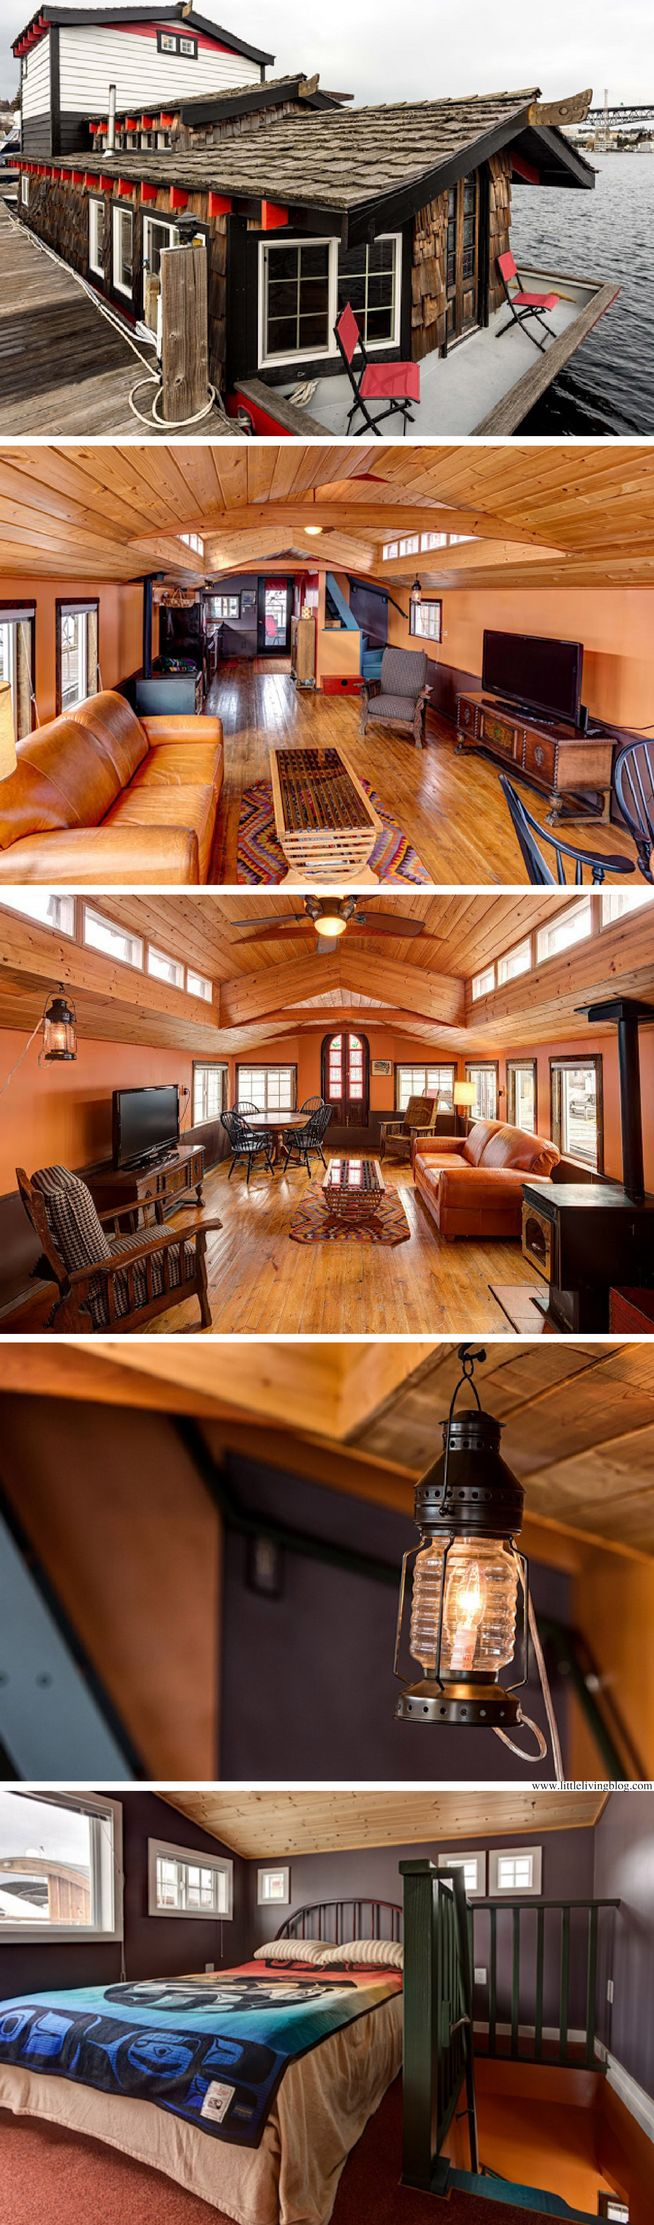 The Haida House: a 600+ sq ft houseboat in the Seattle Harbor